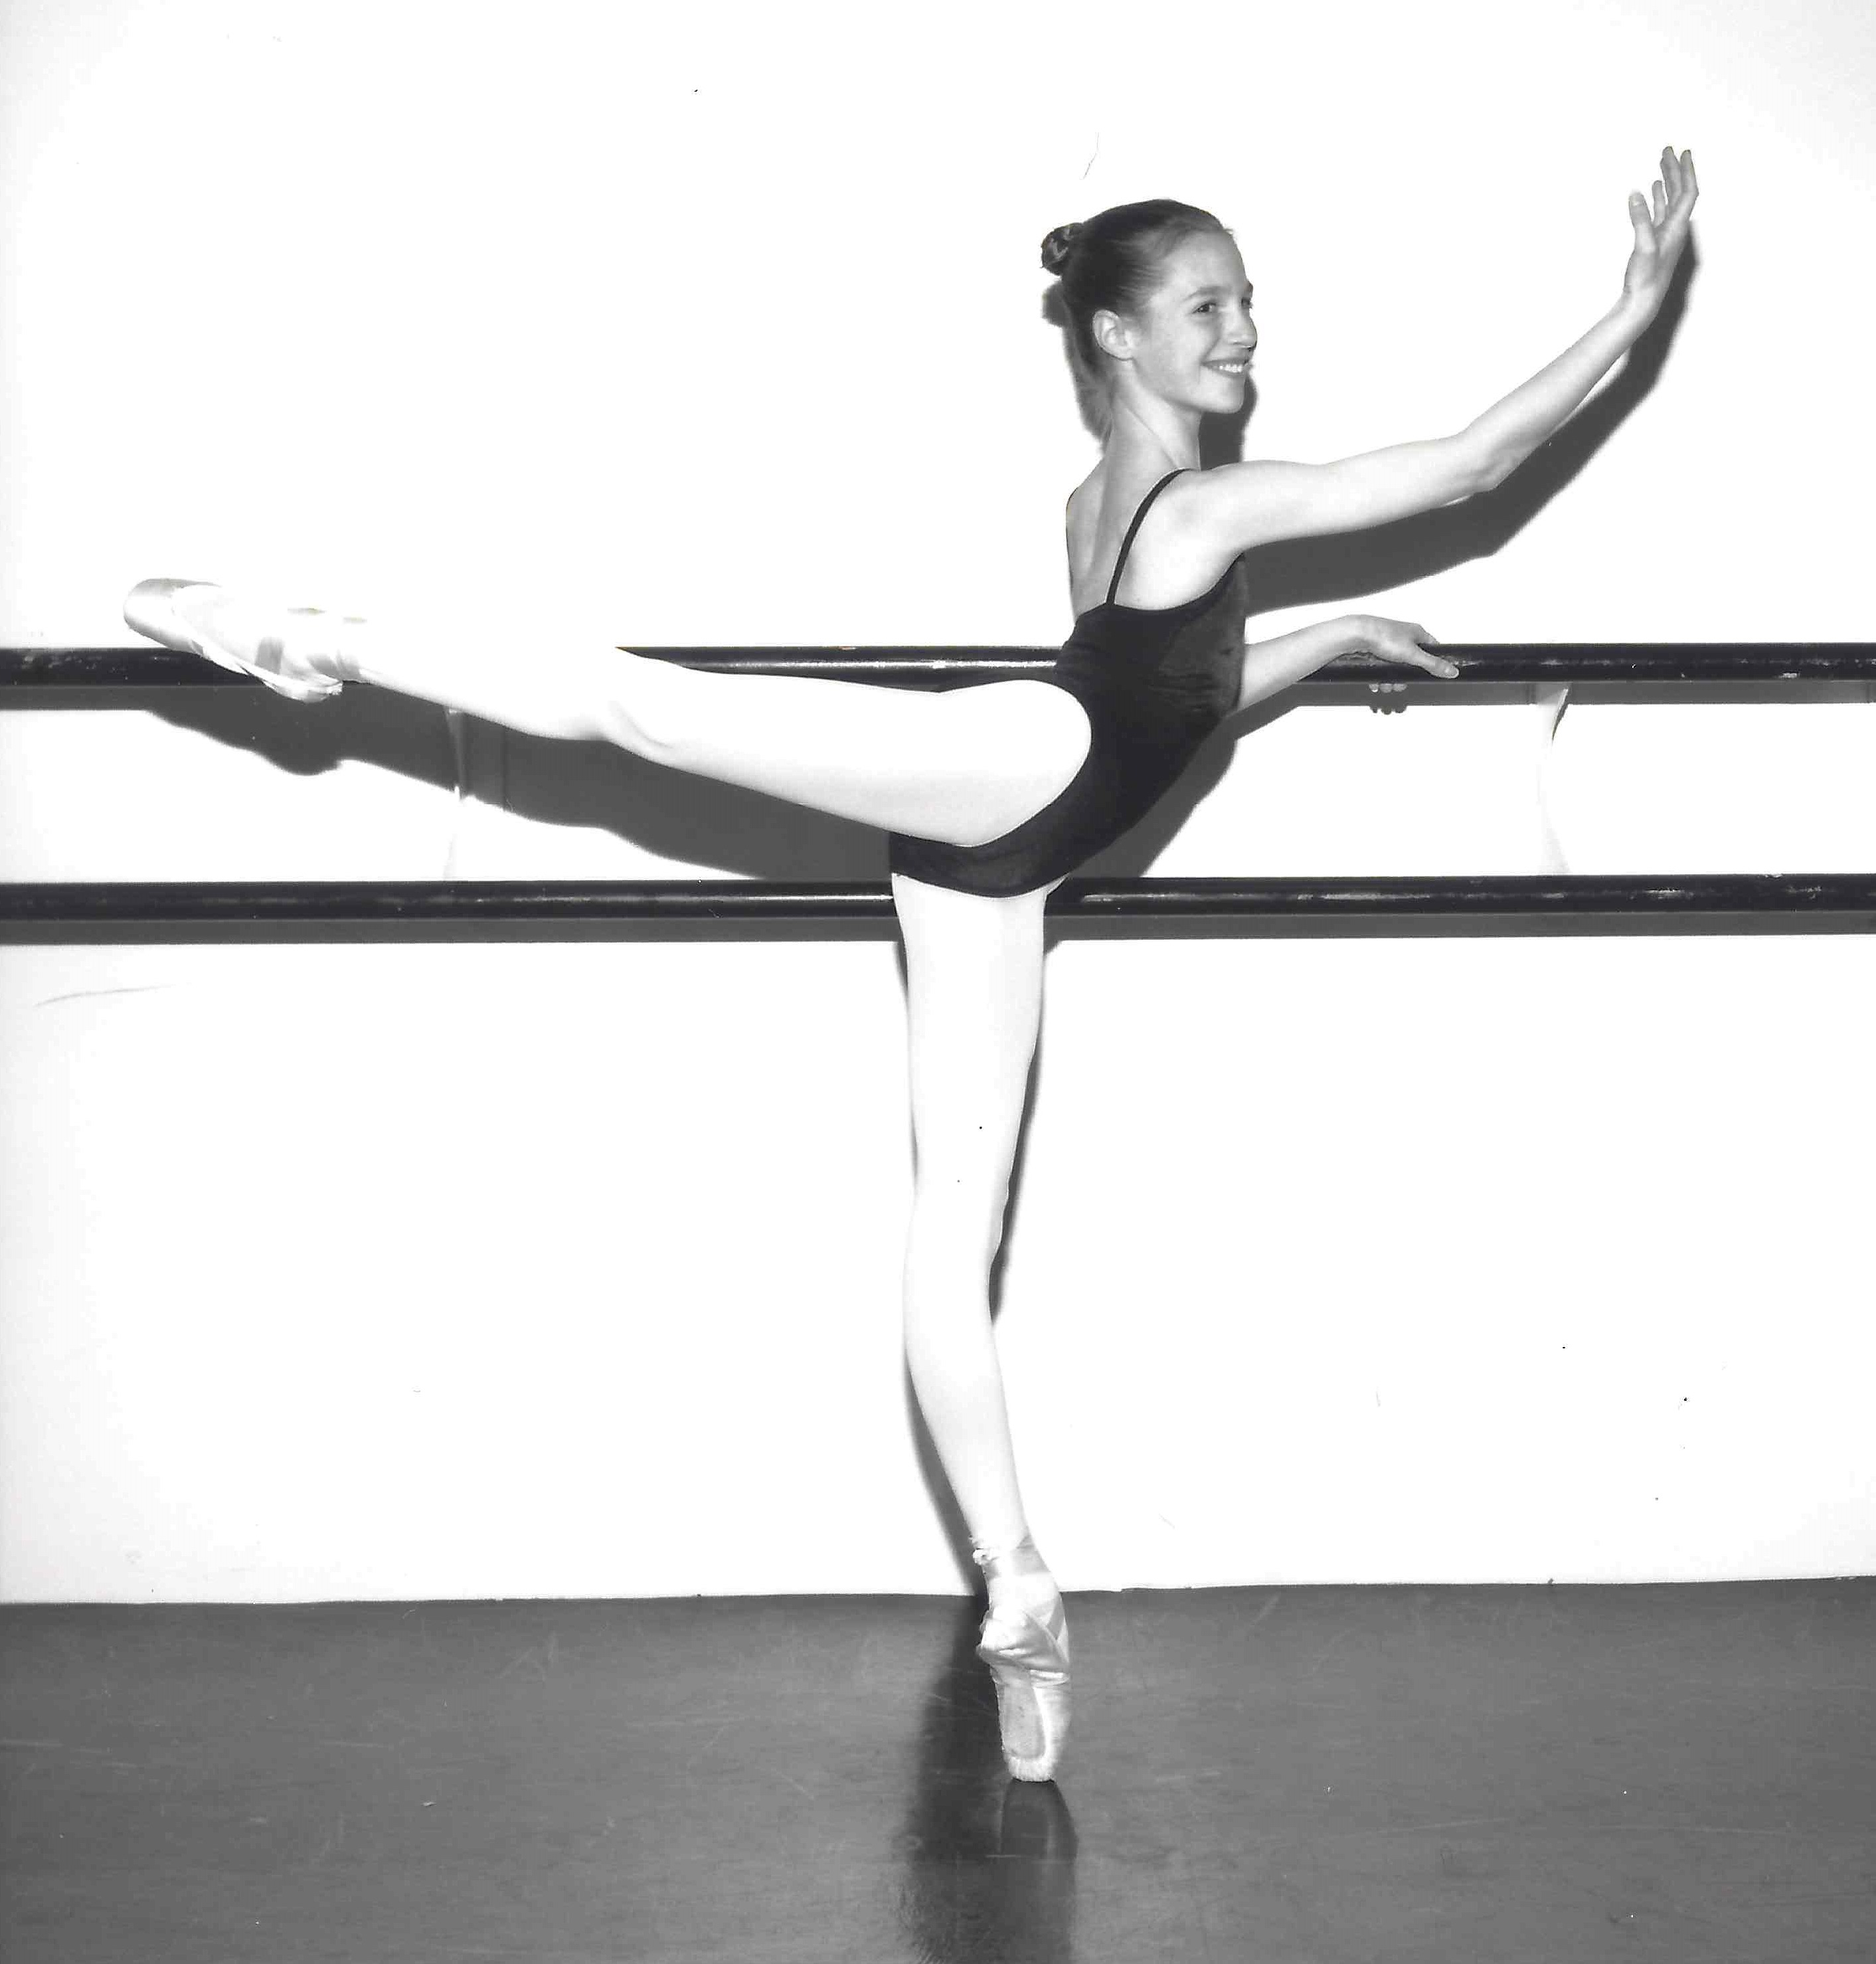 Sara Webb Bardo, age 12, would be attending the HARID Conservatory in Florida for intensive ballet training.